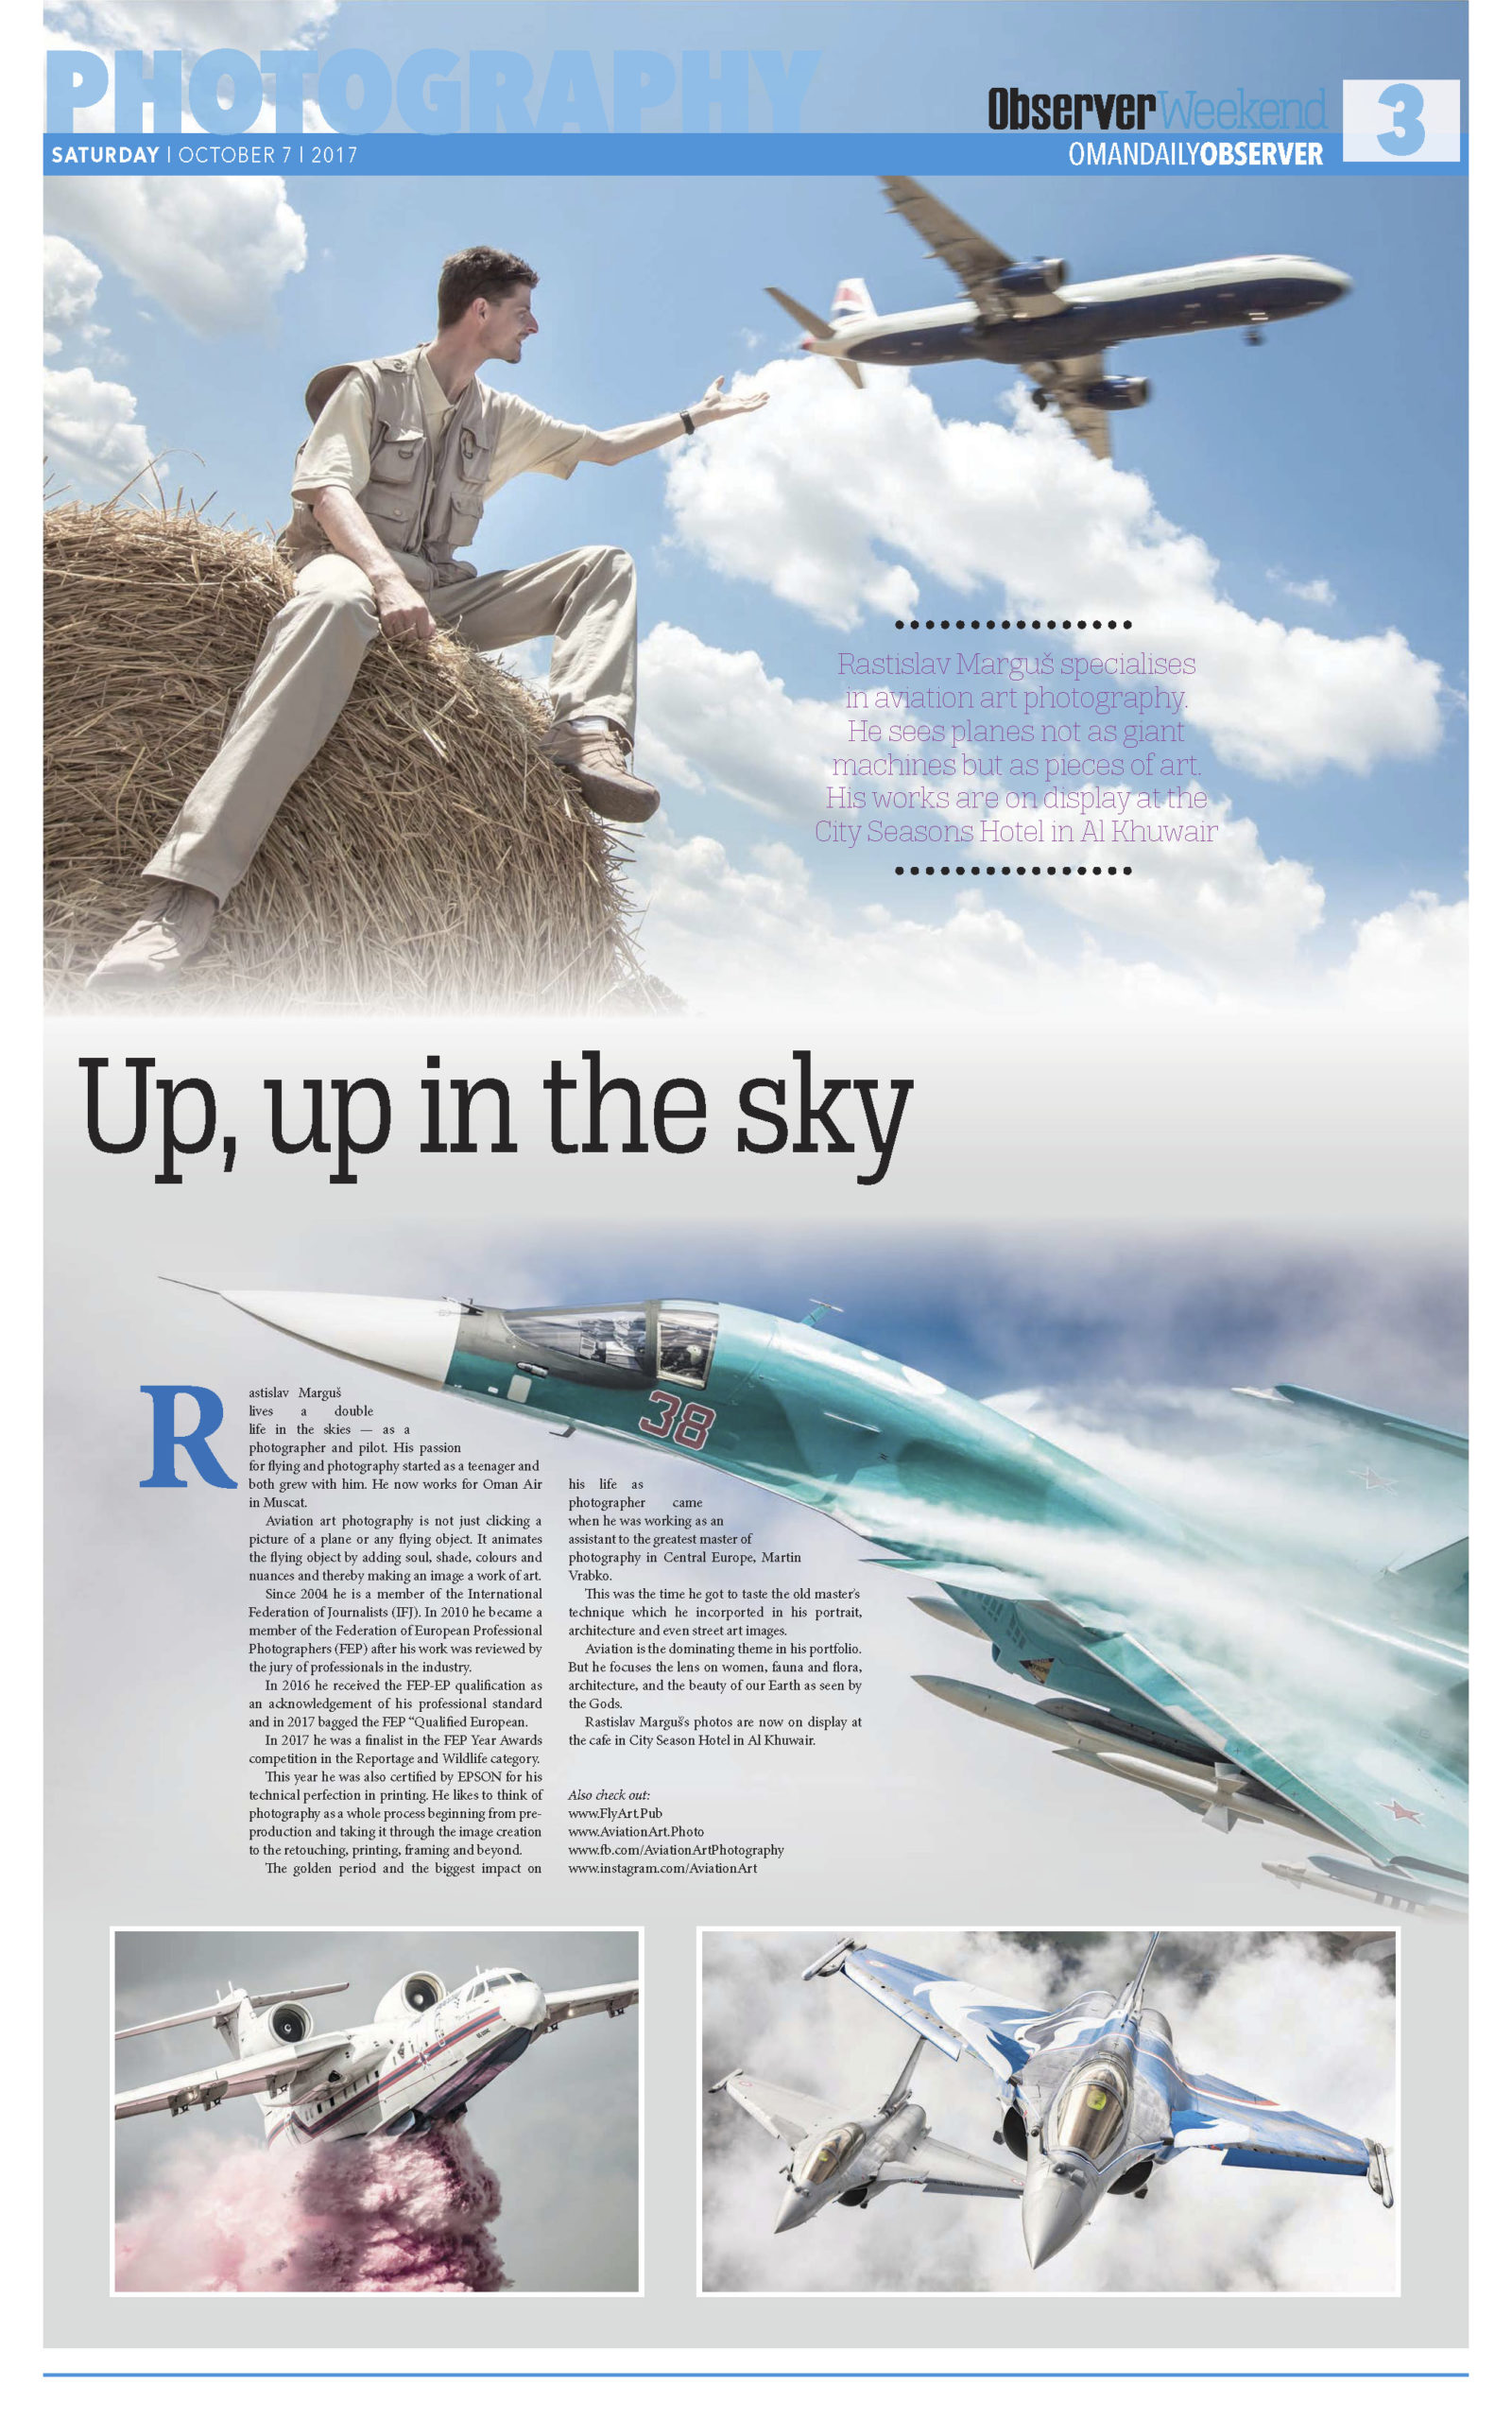 Oman Daily Observer, Aviation Art Photography Exhibition 2017